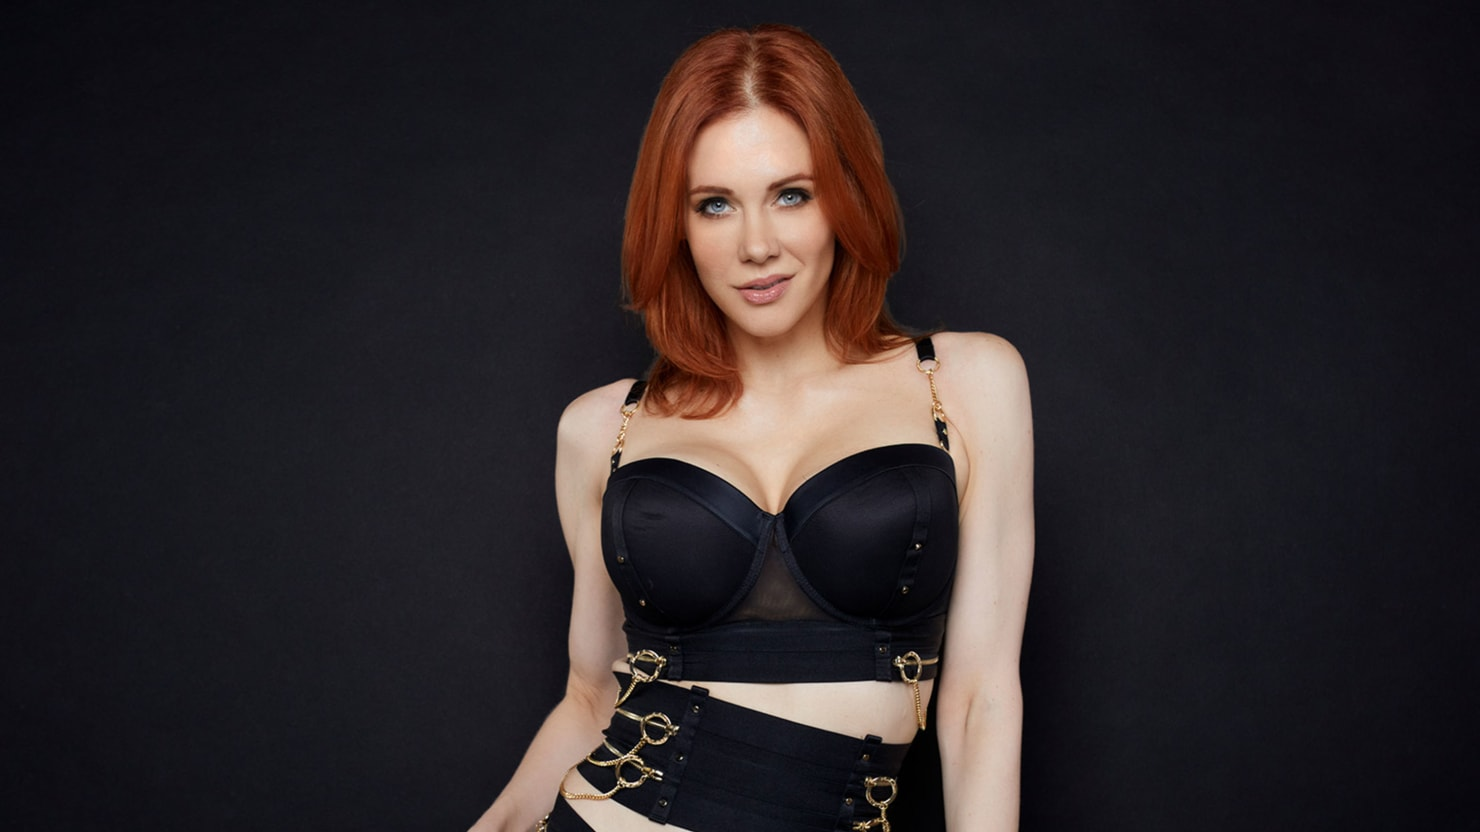 Maitland Ward's Journey From 'Boy Meets World' to Porn's A-List